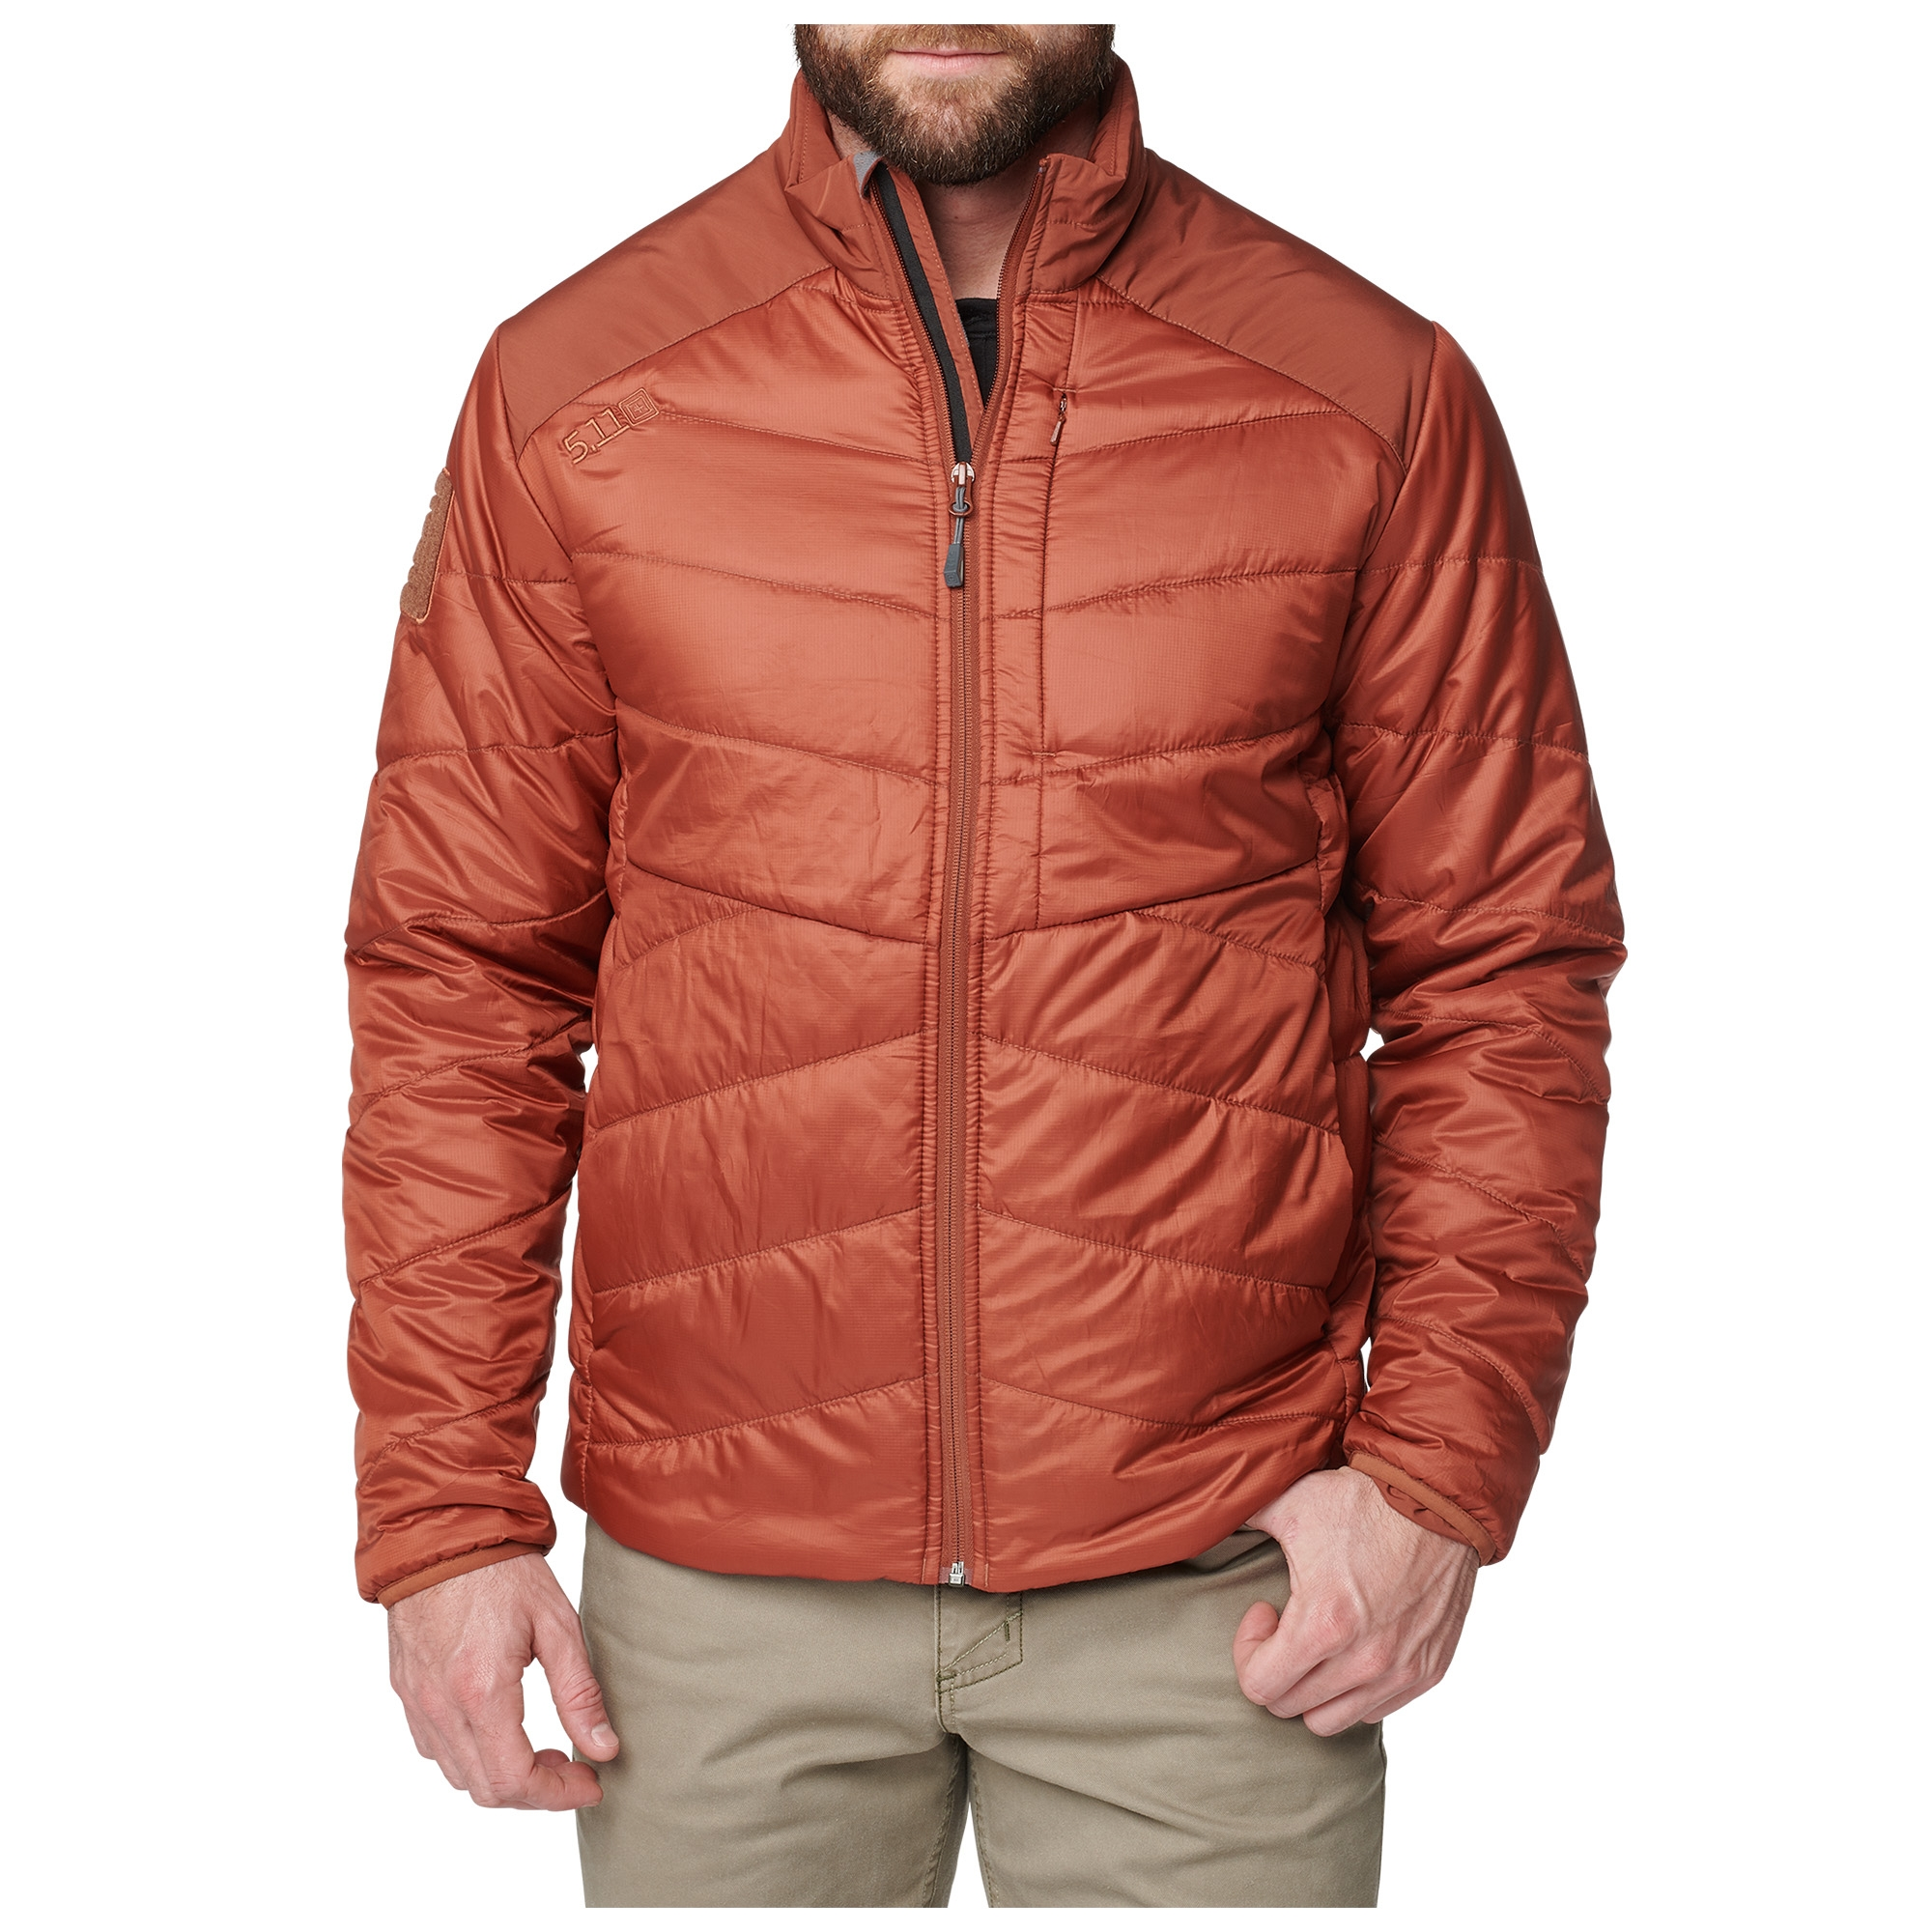 5.11 Tactical Men's Peninsula Insulator Packable Jacket, Size XL (CCW Concealed Carry)